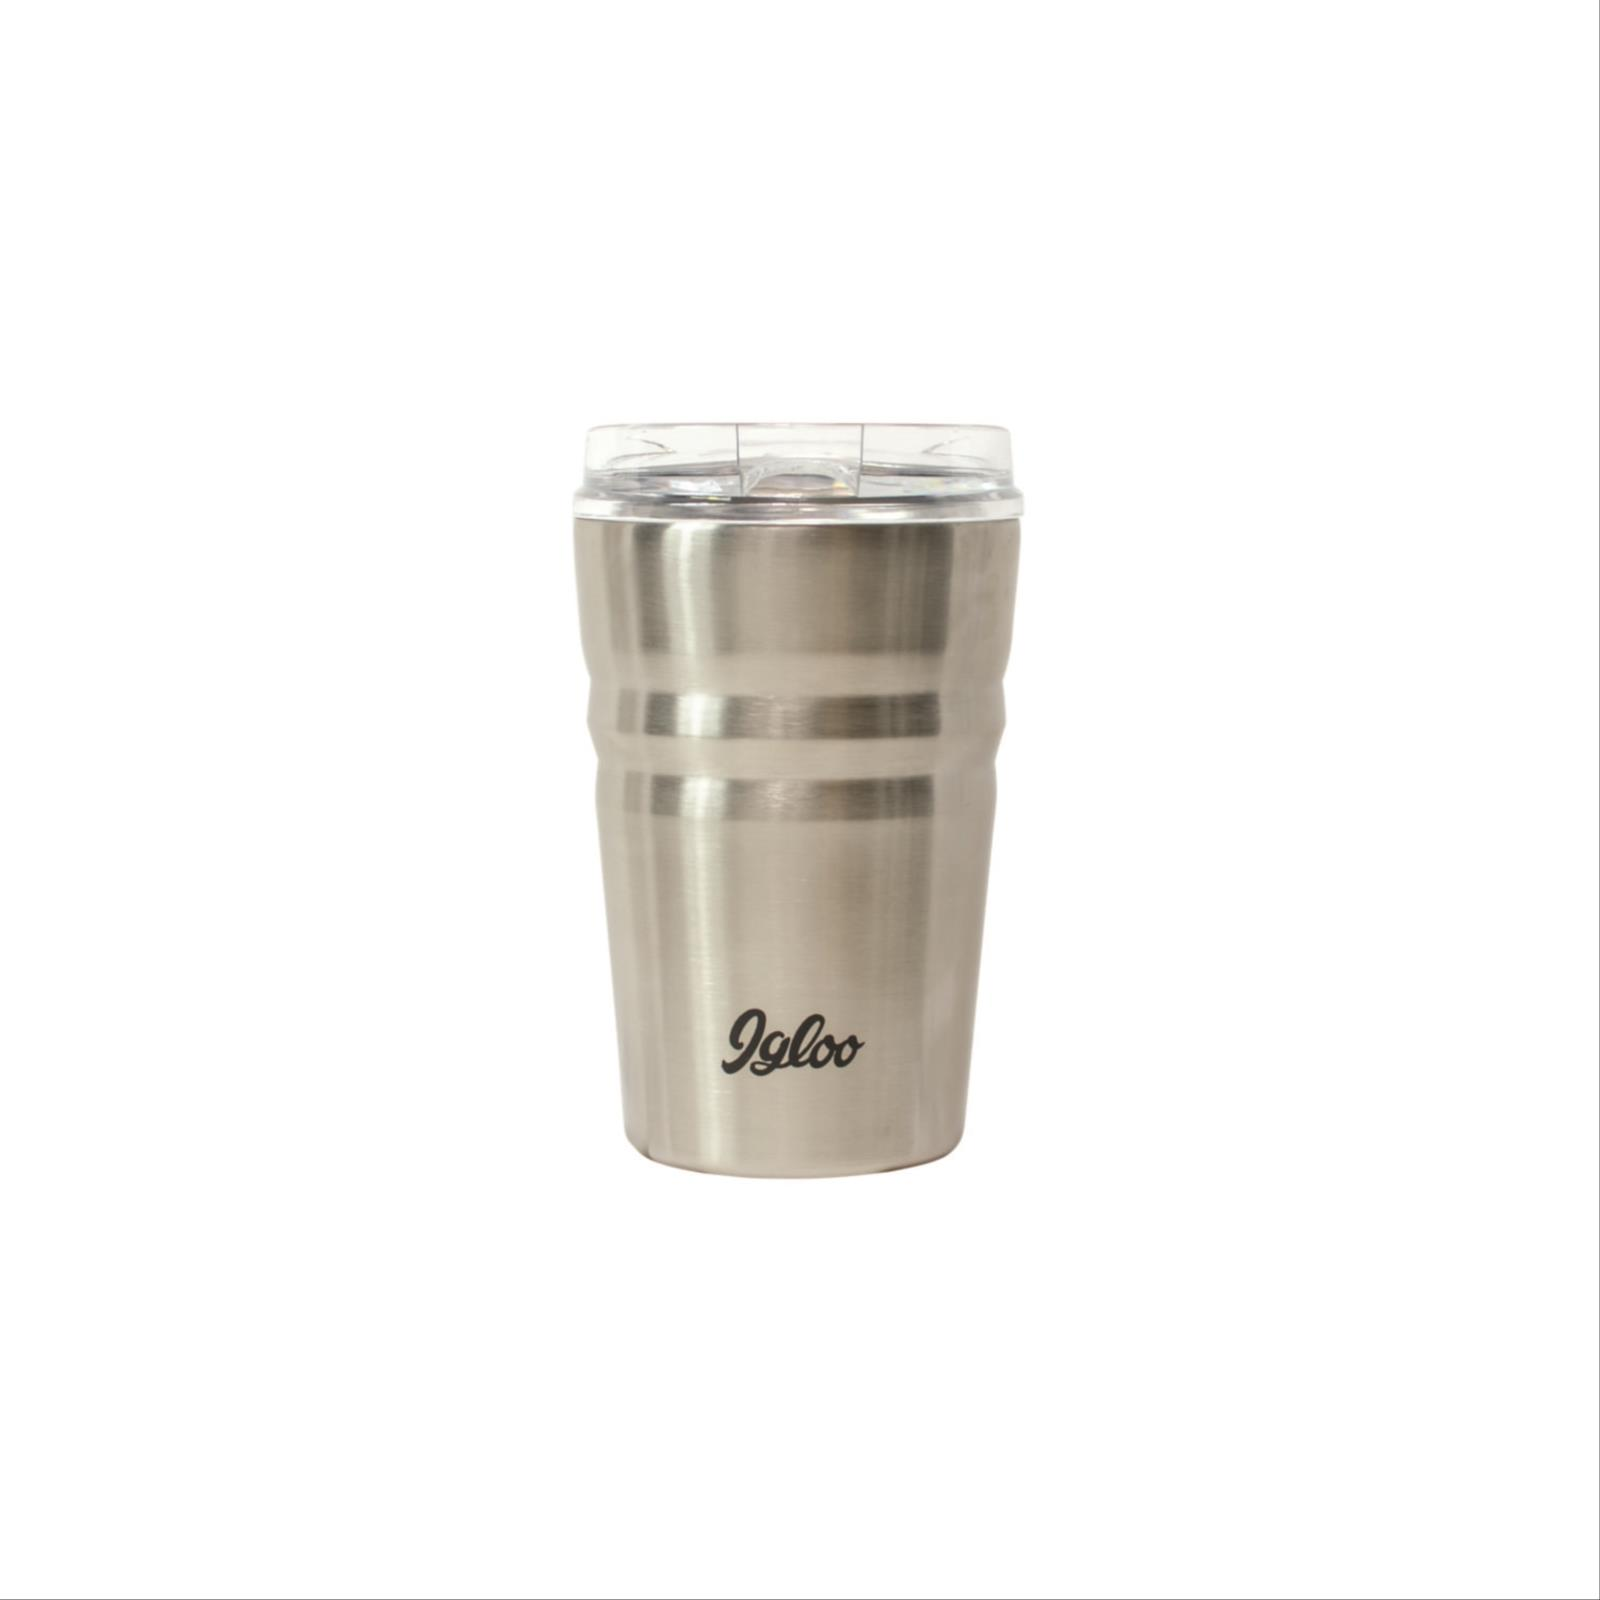 LEGACY™ Stainless Steel 12oz Insulated Tumbler